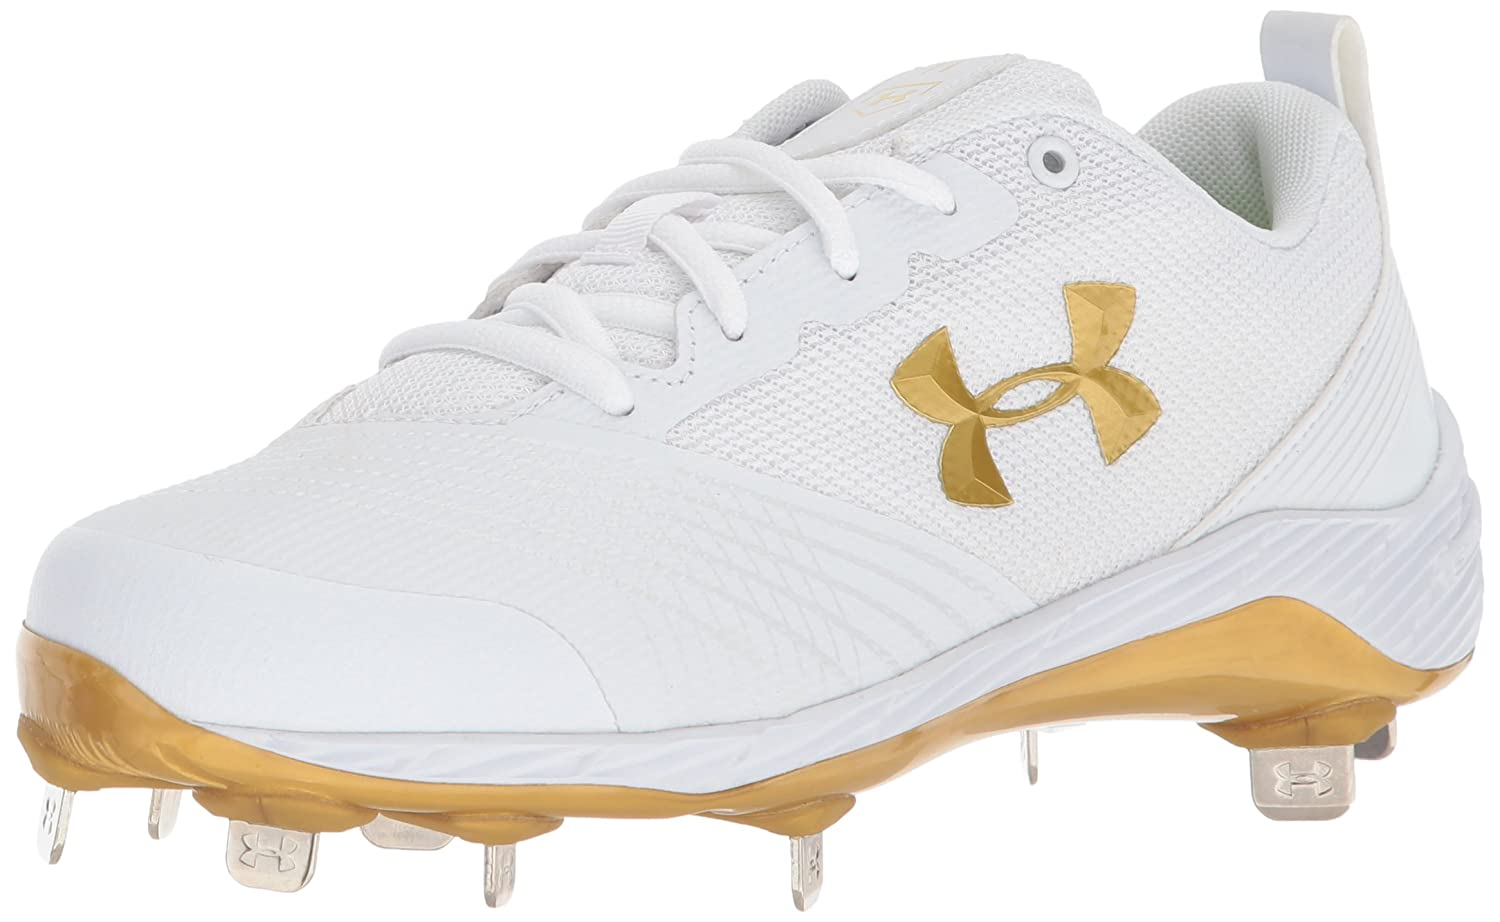 Under Armour Women's Glyde St Softball Shoe B06XCL9MRP 10.5 M US|White